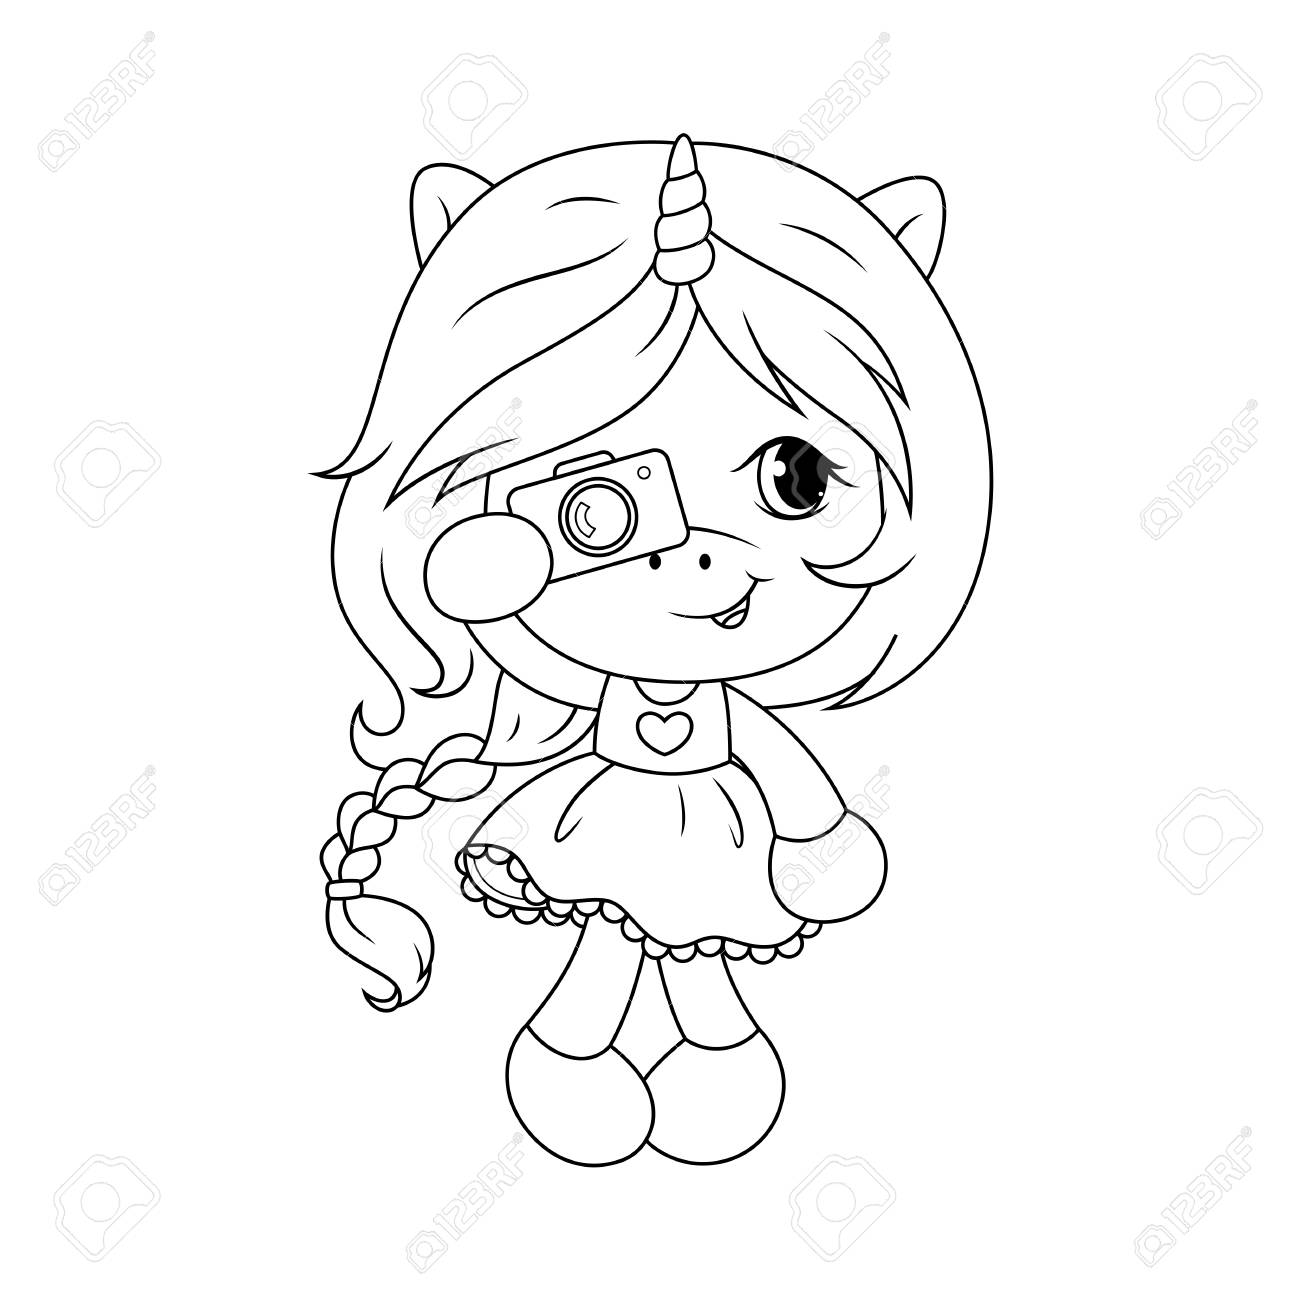 7800 Coloring Pages Of Cute Baby Unicorns , Free HD Download